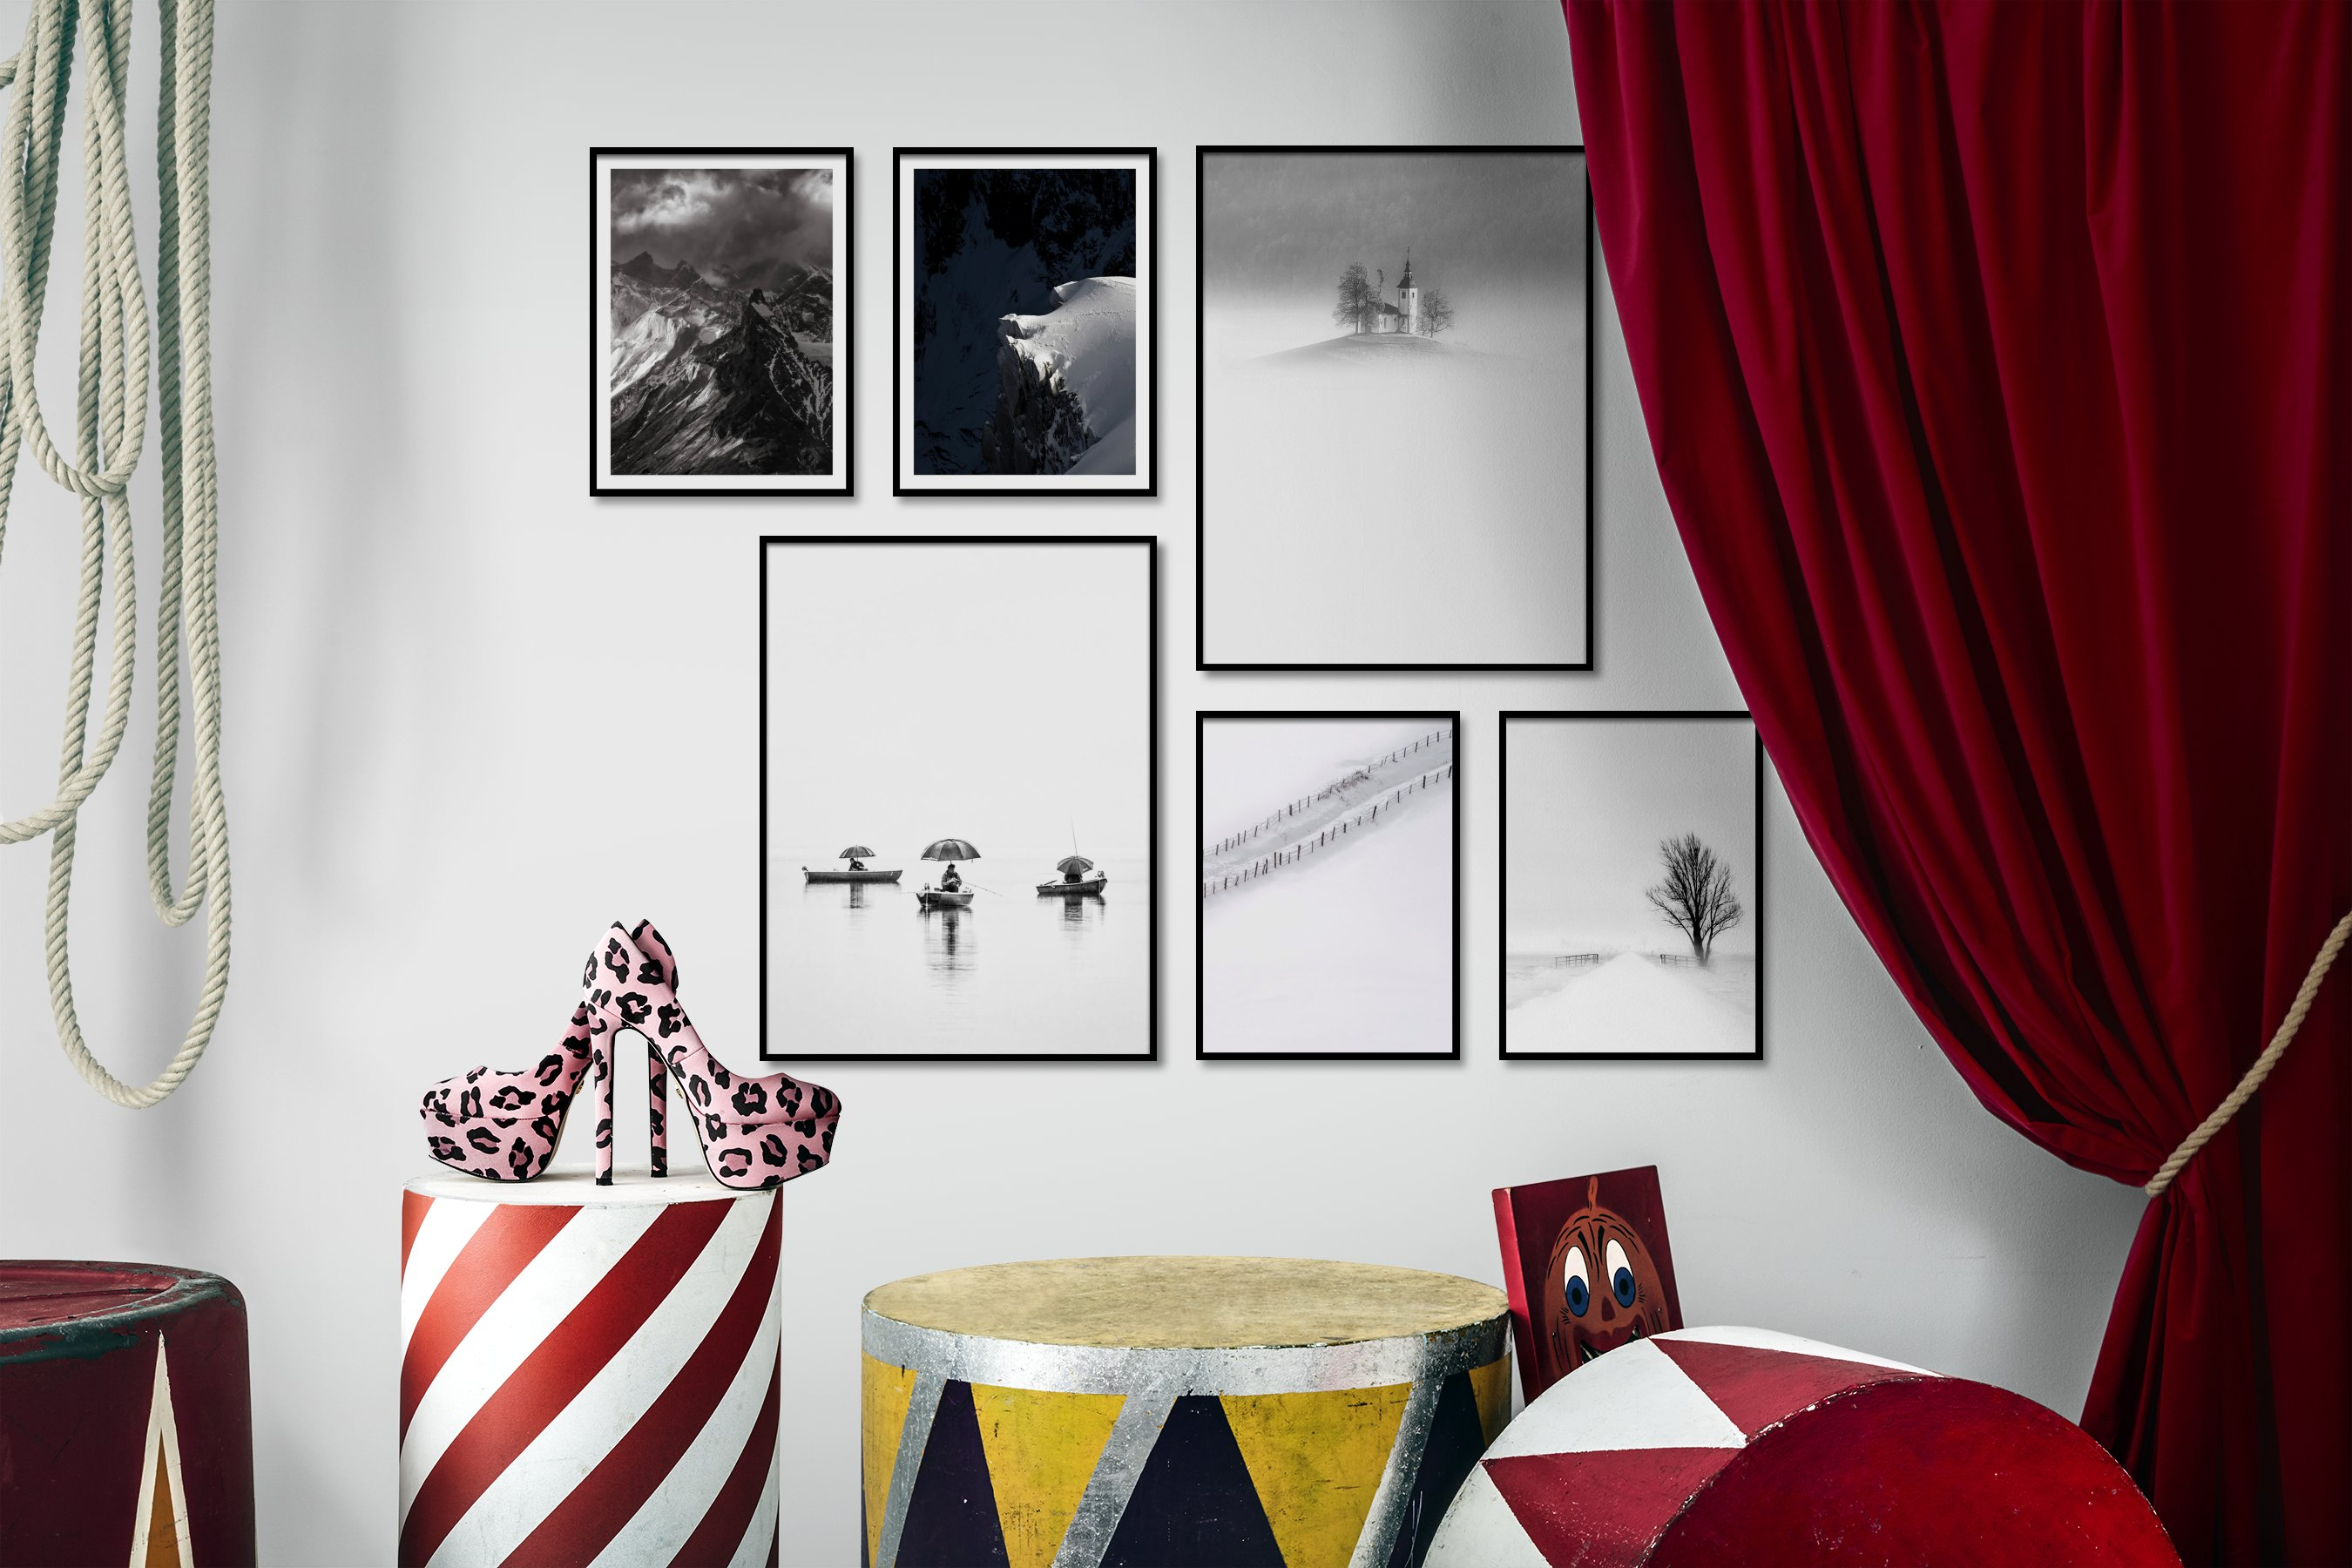 Gallery wall idea with six framed pictures arranged on a wall depicting Black & White, Nature, For the Moderate, Bright Tones, For the Minimalist, Beach & Water, Country Life, and Mindfulness